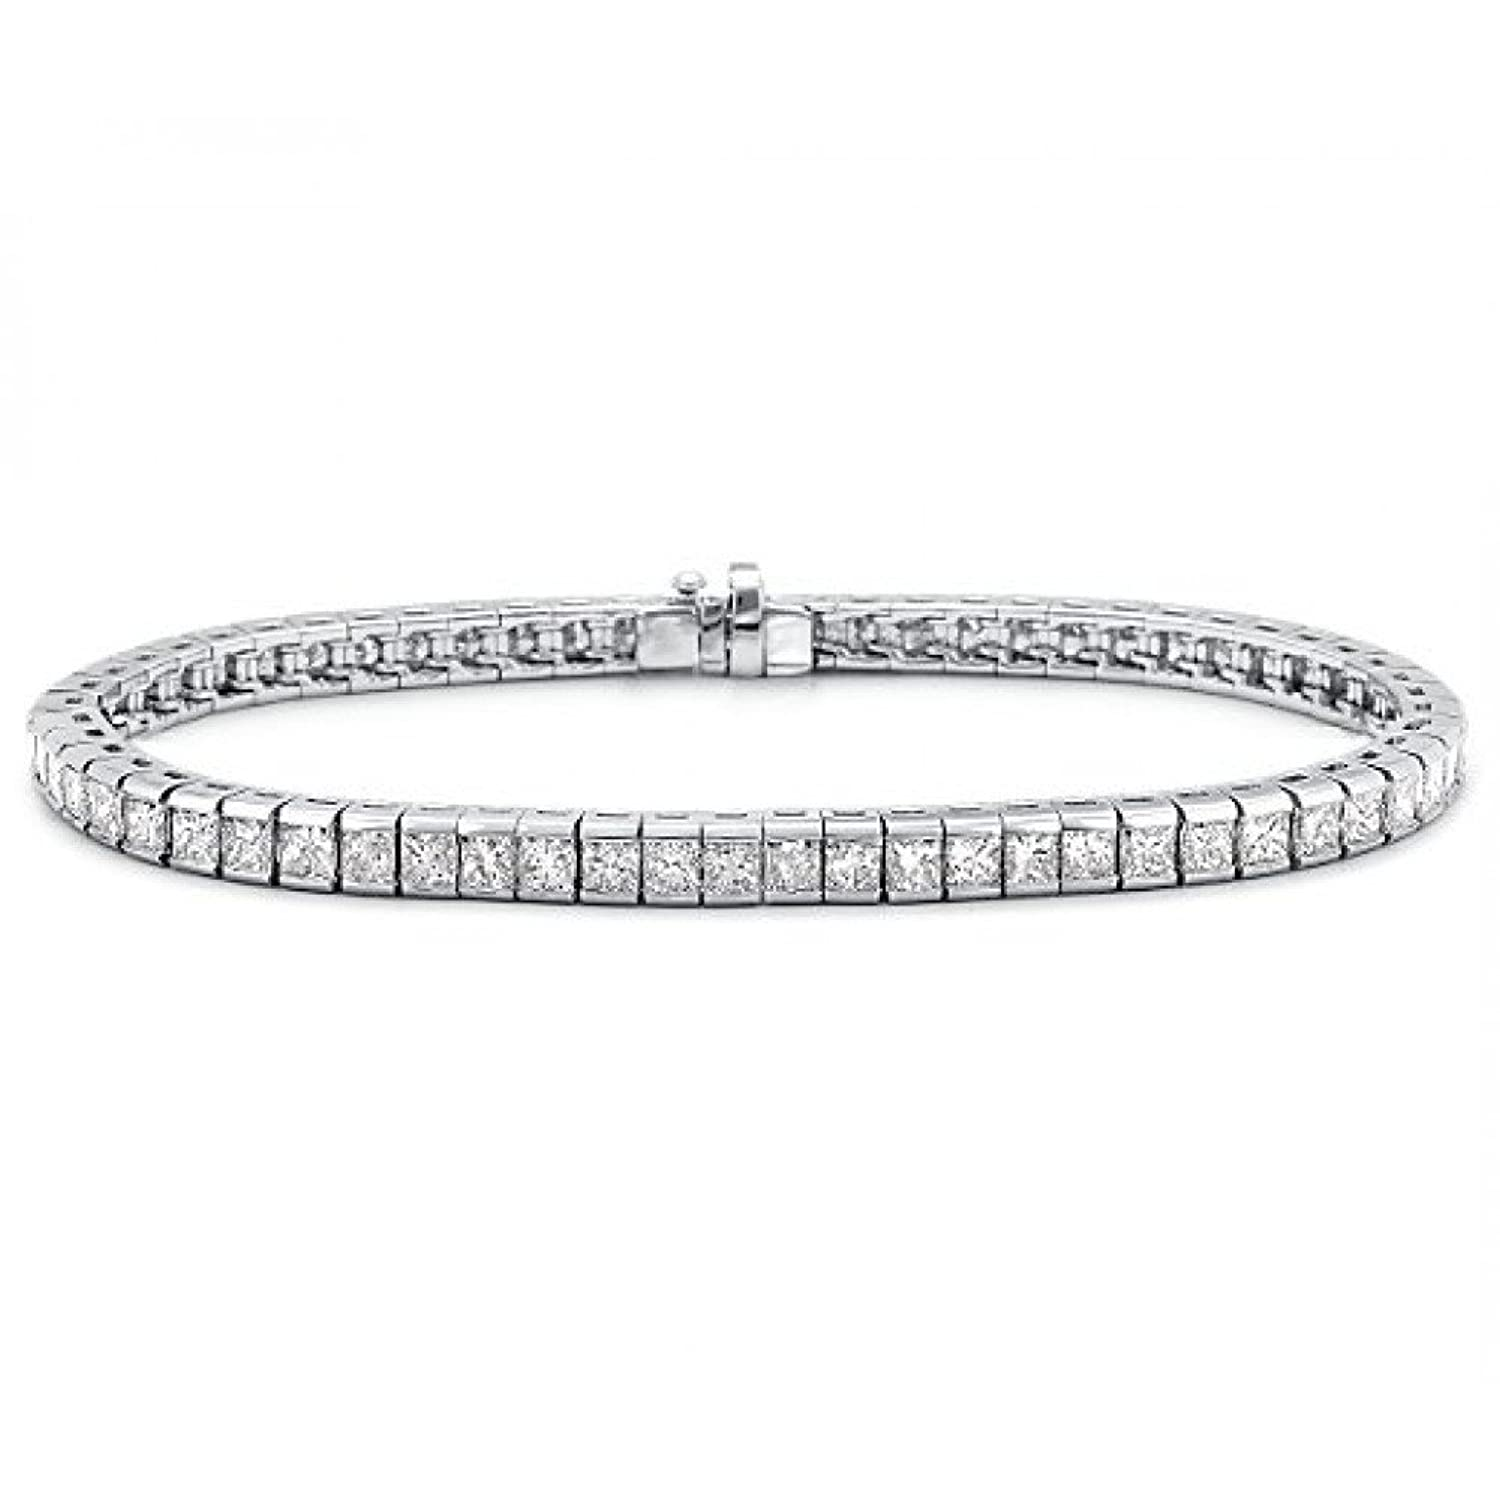 yeprem diamond loading and bracelet round operandi marquise bangle by large white moda